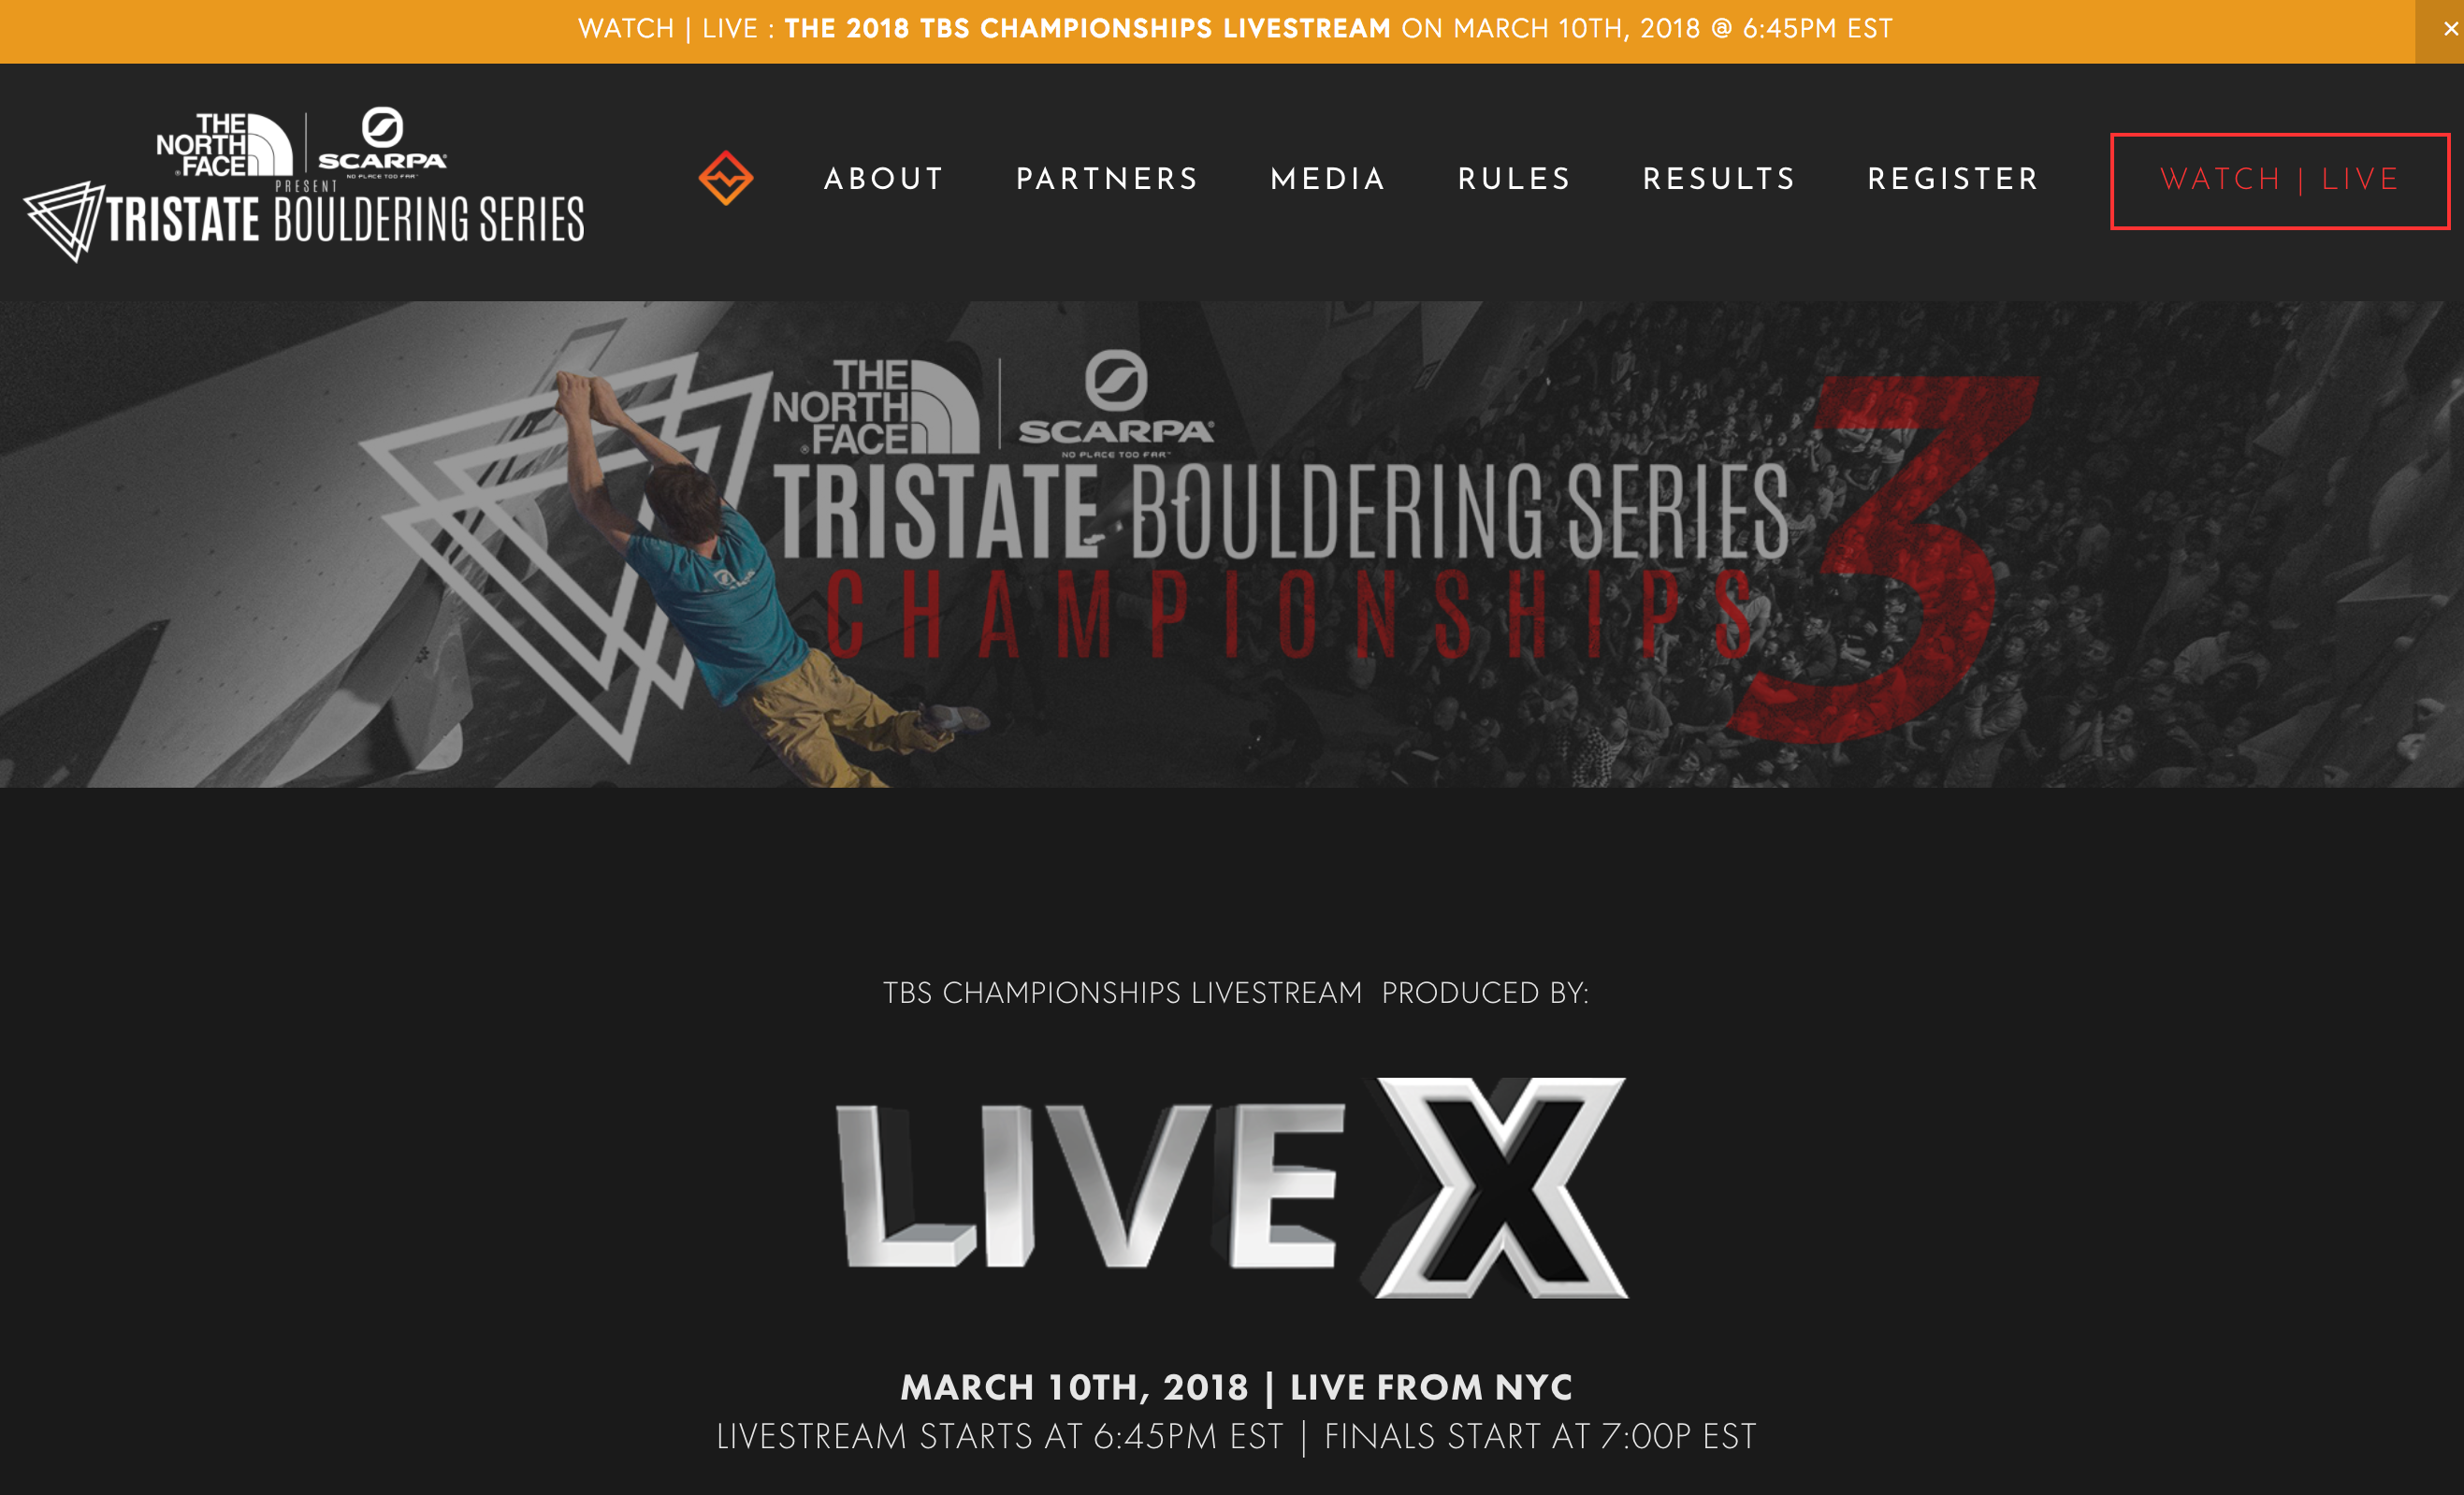 Live X streams the Tristate Bouldering Series at the Cliffs